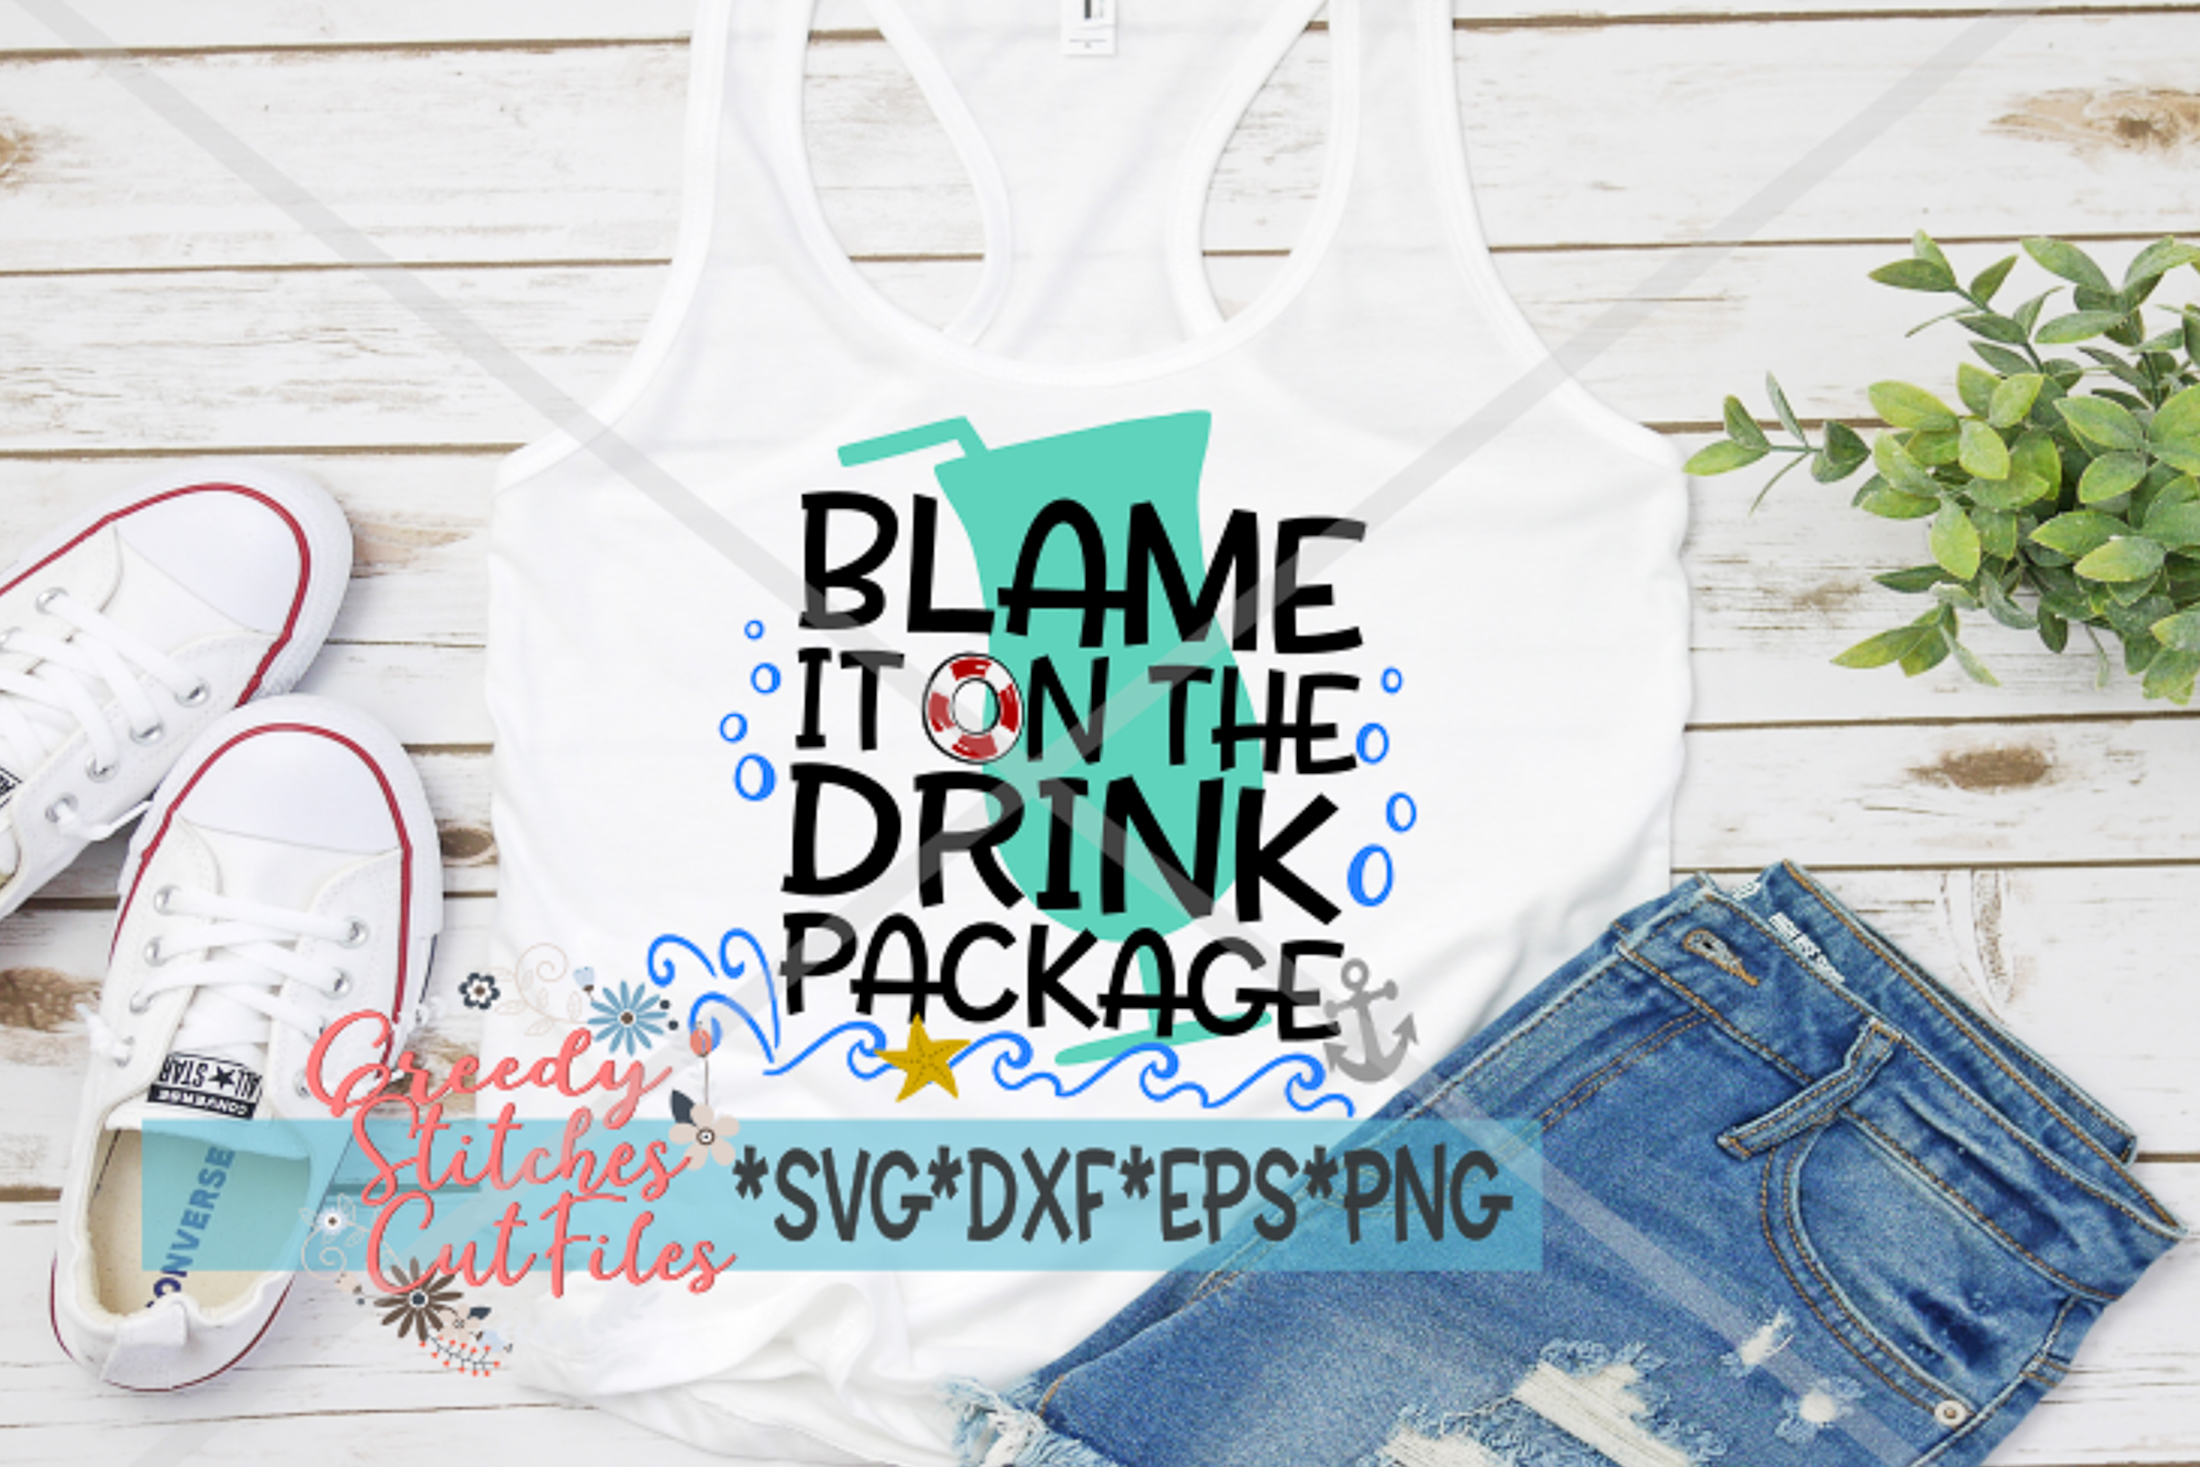 Blame It On The Drink Package Cruise SVG DXF EPS PNG example image 5